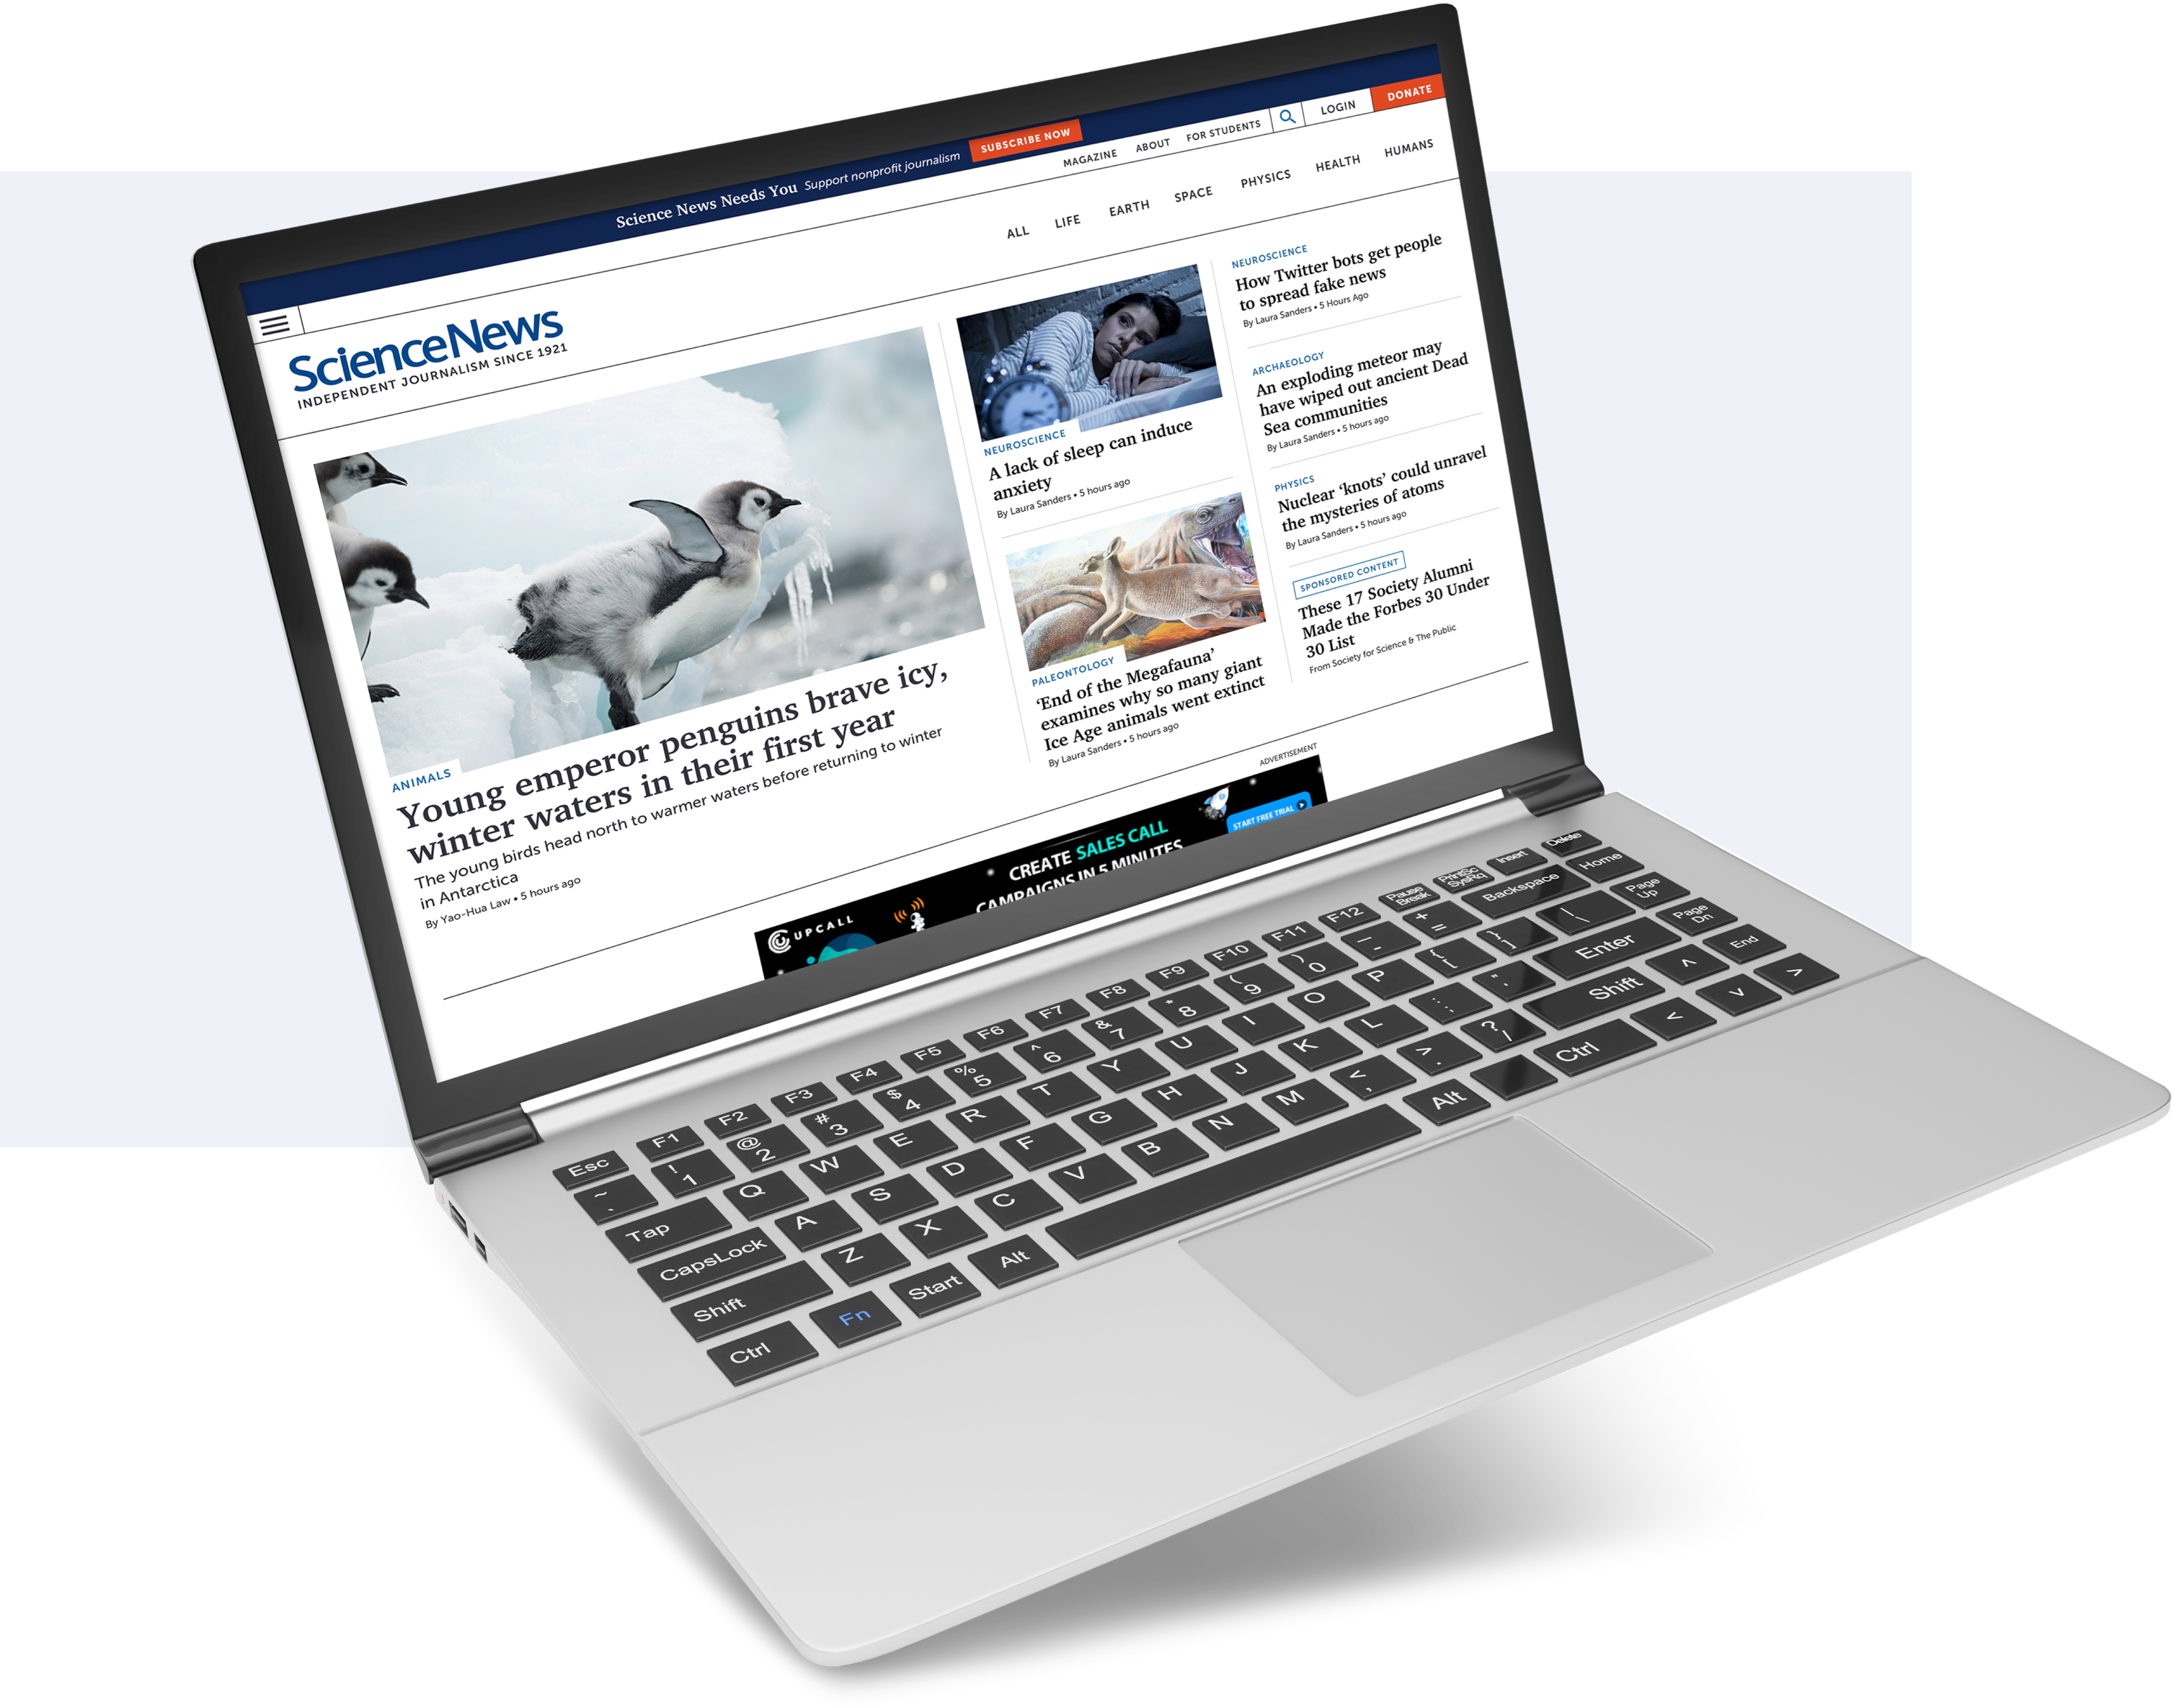 The main page of Science News with navigation, featured article, and additional content displayed on a laptop screen